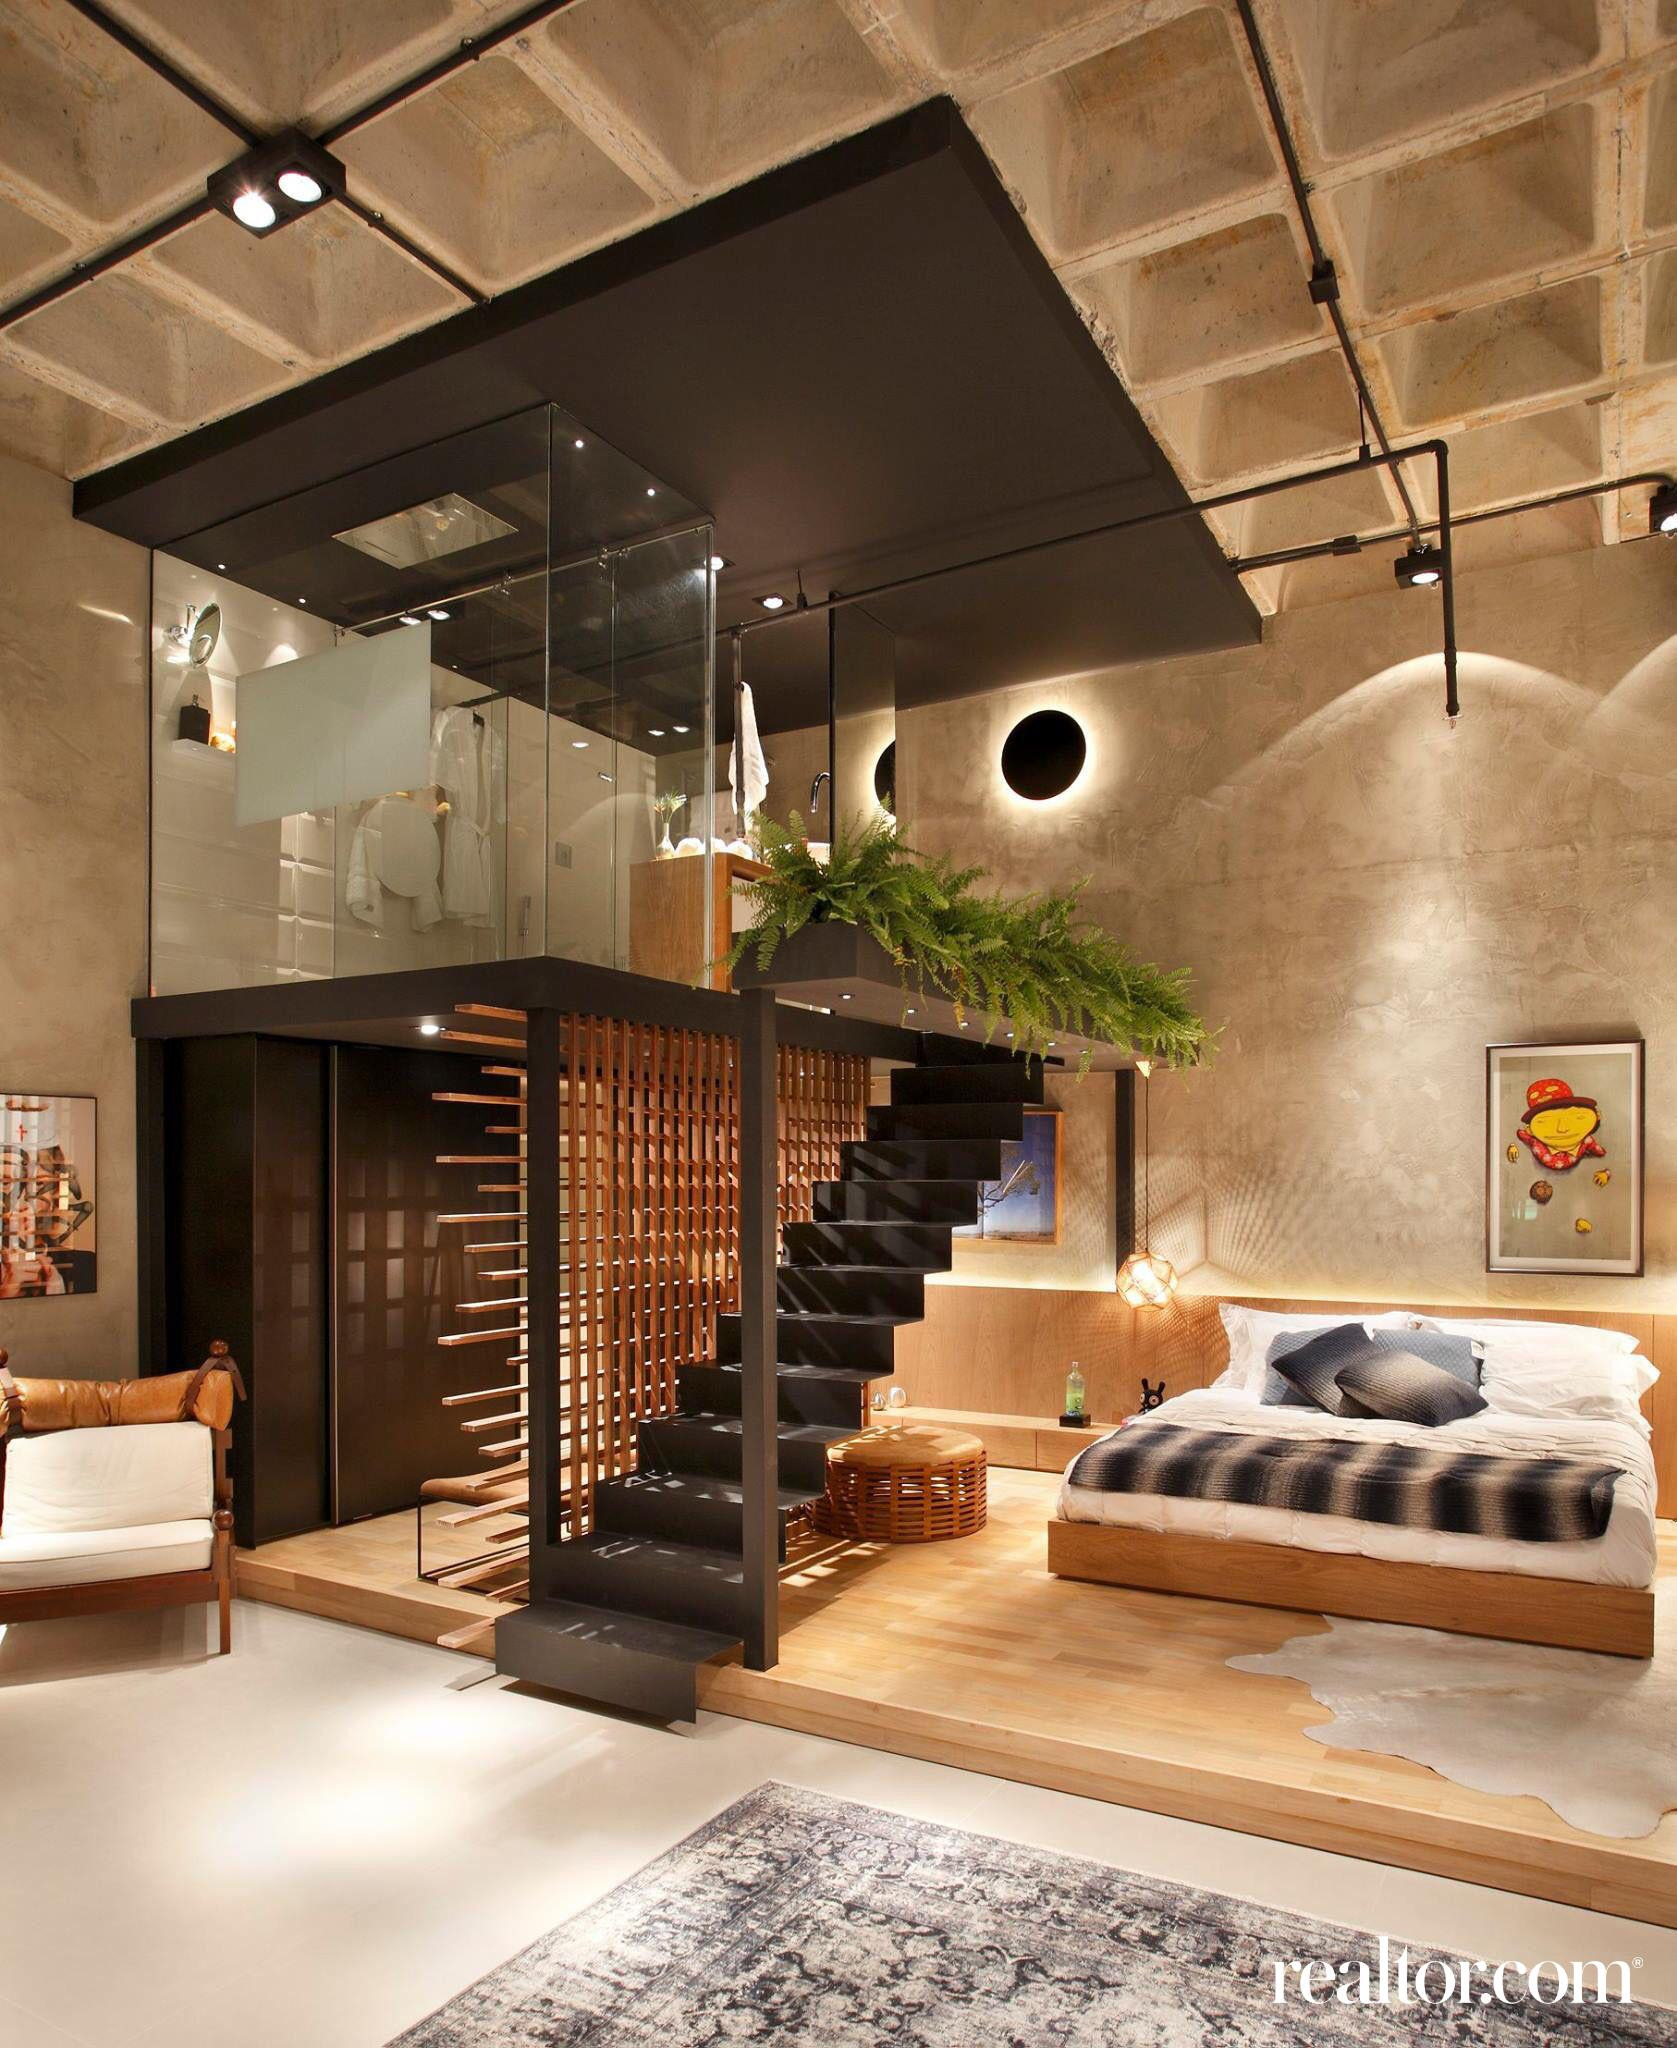 casa cor 2014 modern loft in rio de janeiro plete with floating staircase and wall to wall glass shower rdc 1677 x 2048